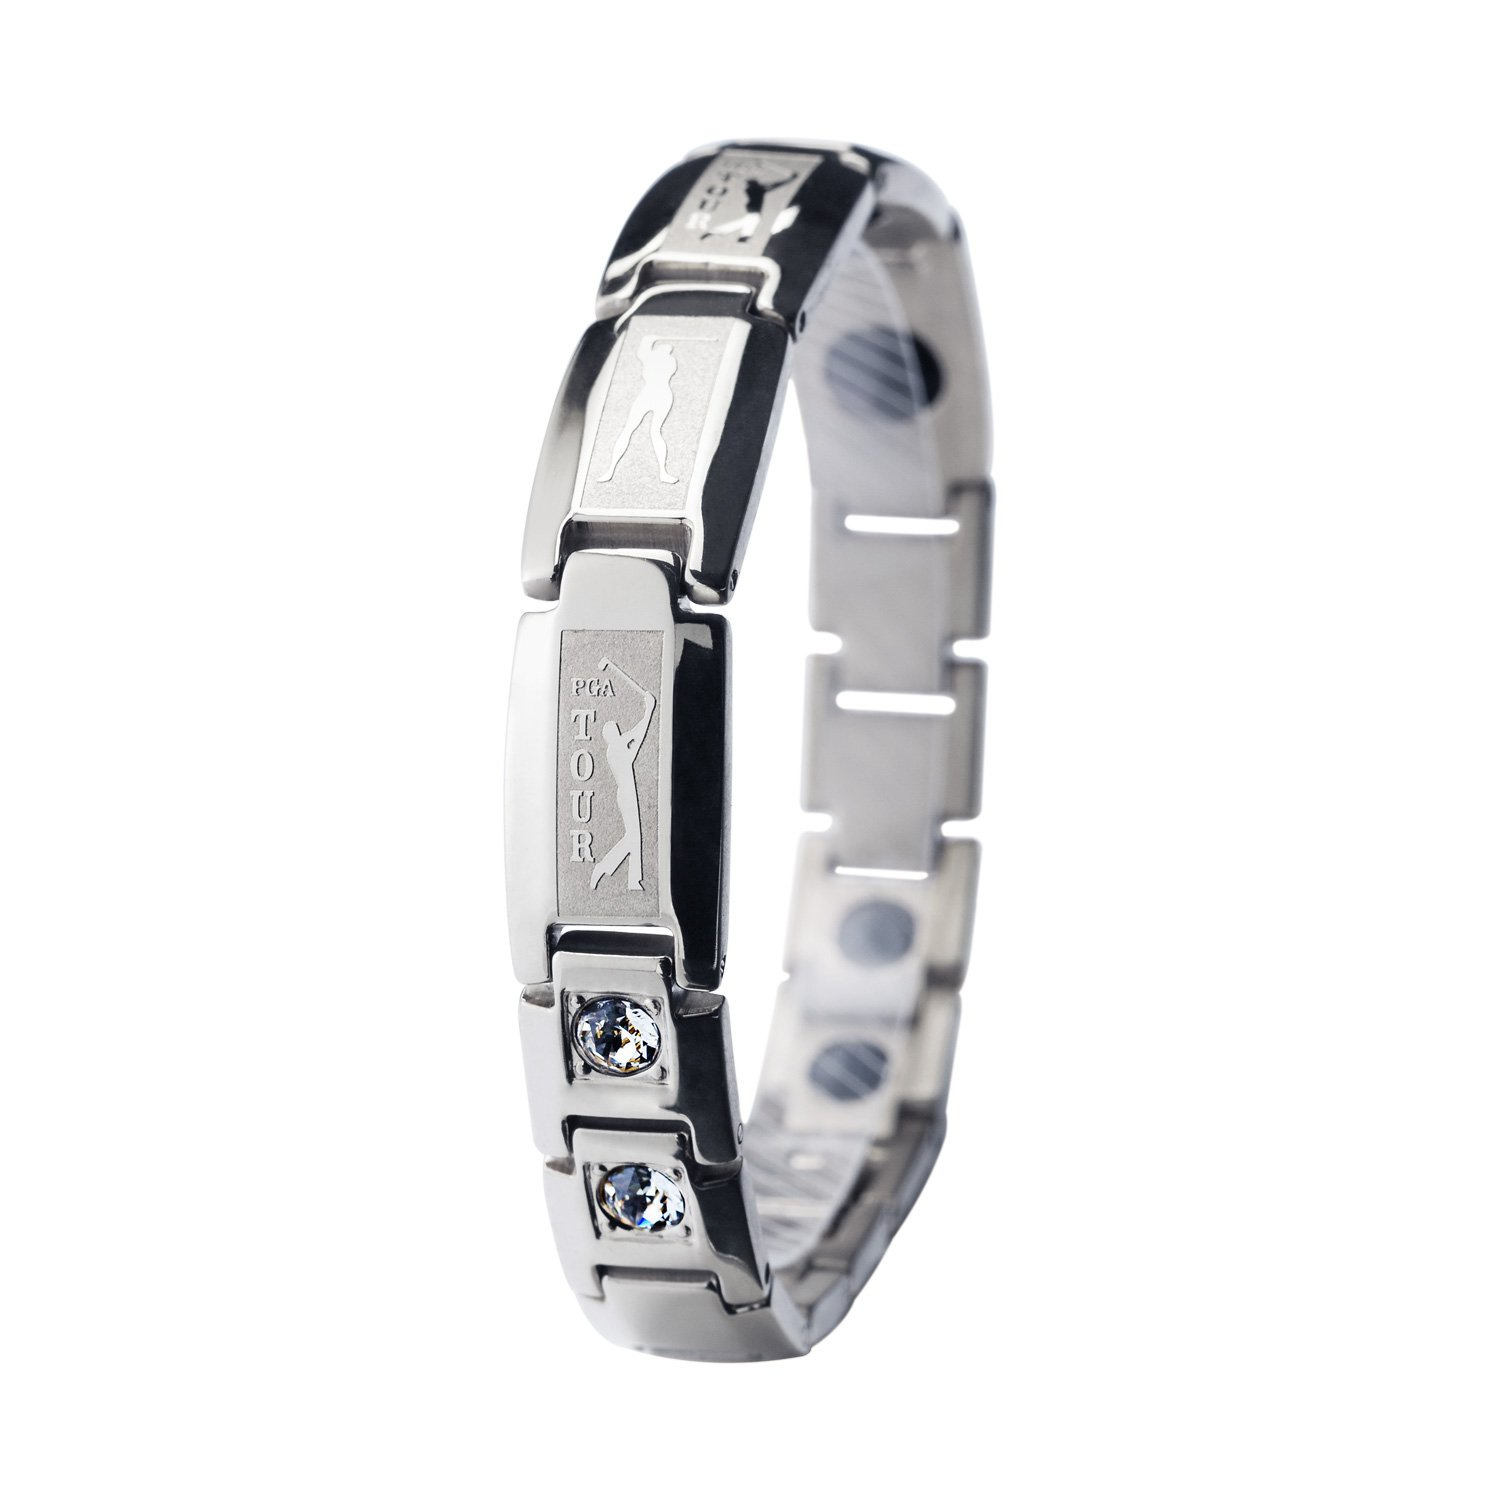 PGA Tour Elegant Titanium Magnetic Therapy Bracelet Pain Relief for Arthritis and Carpal Tunnel (silver)